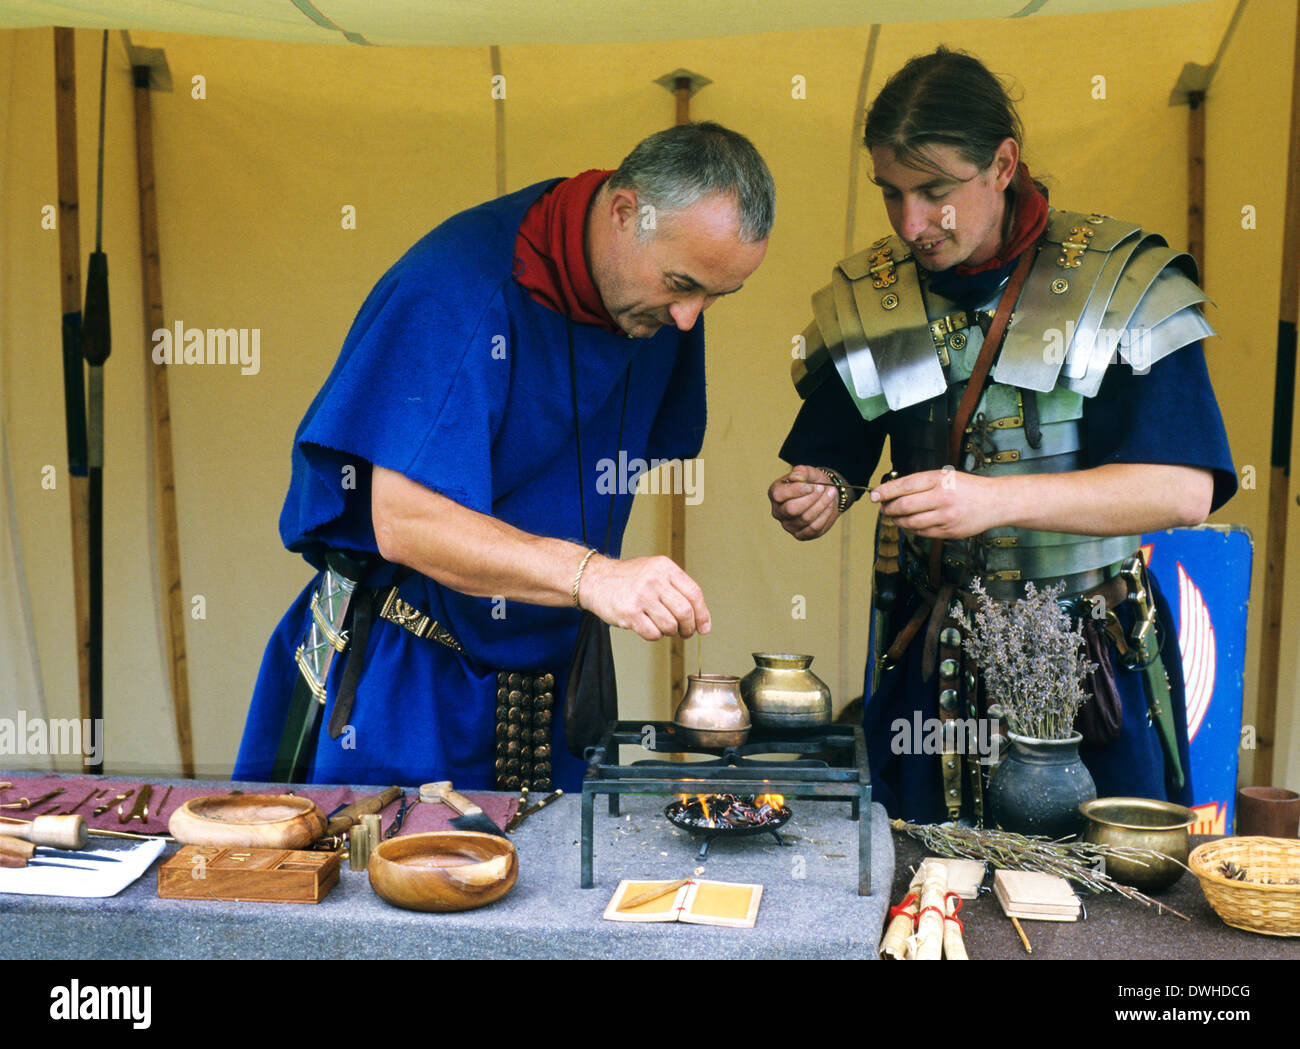 Roman Surgeon, 4th century, historical re-enactment soldier soldiers England UK - Stock Image